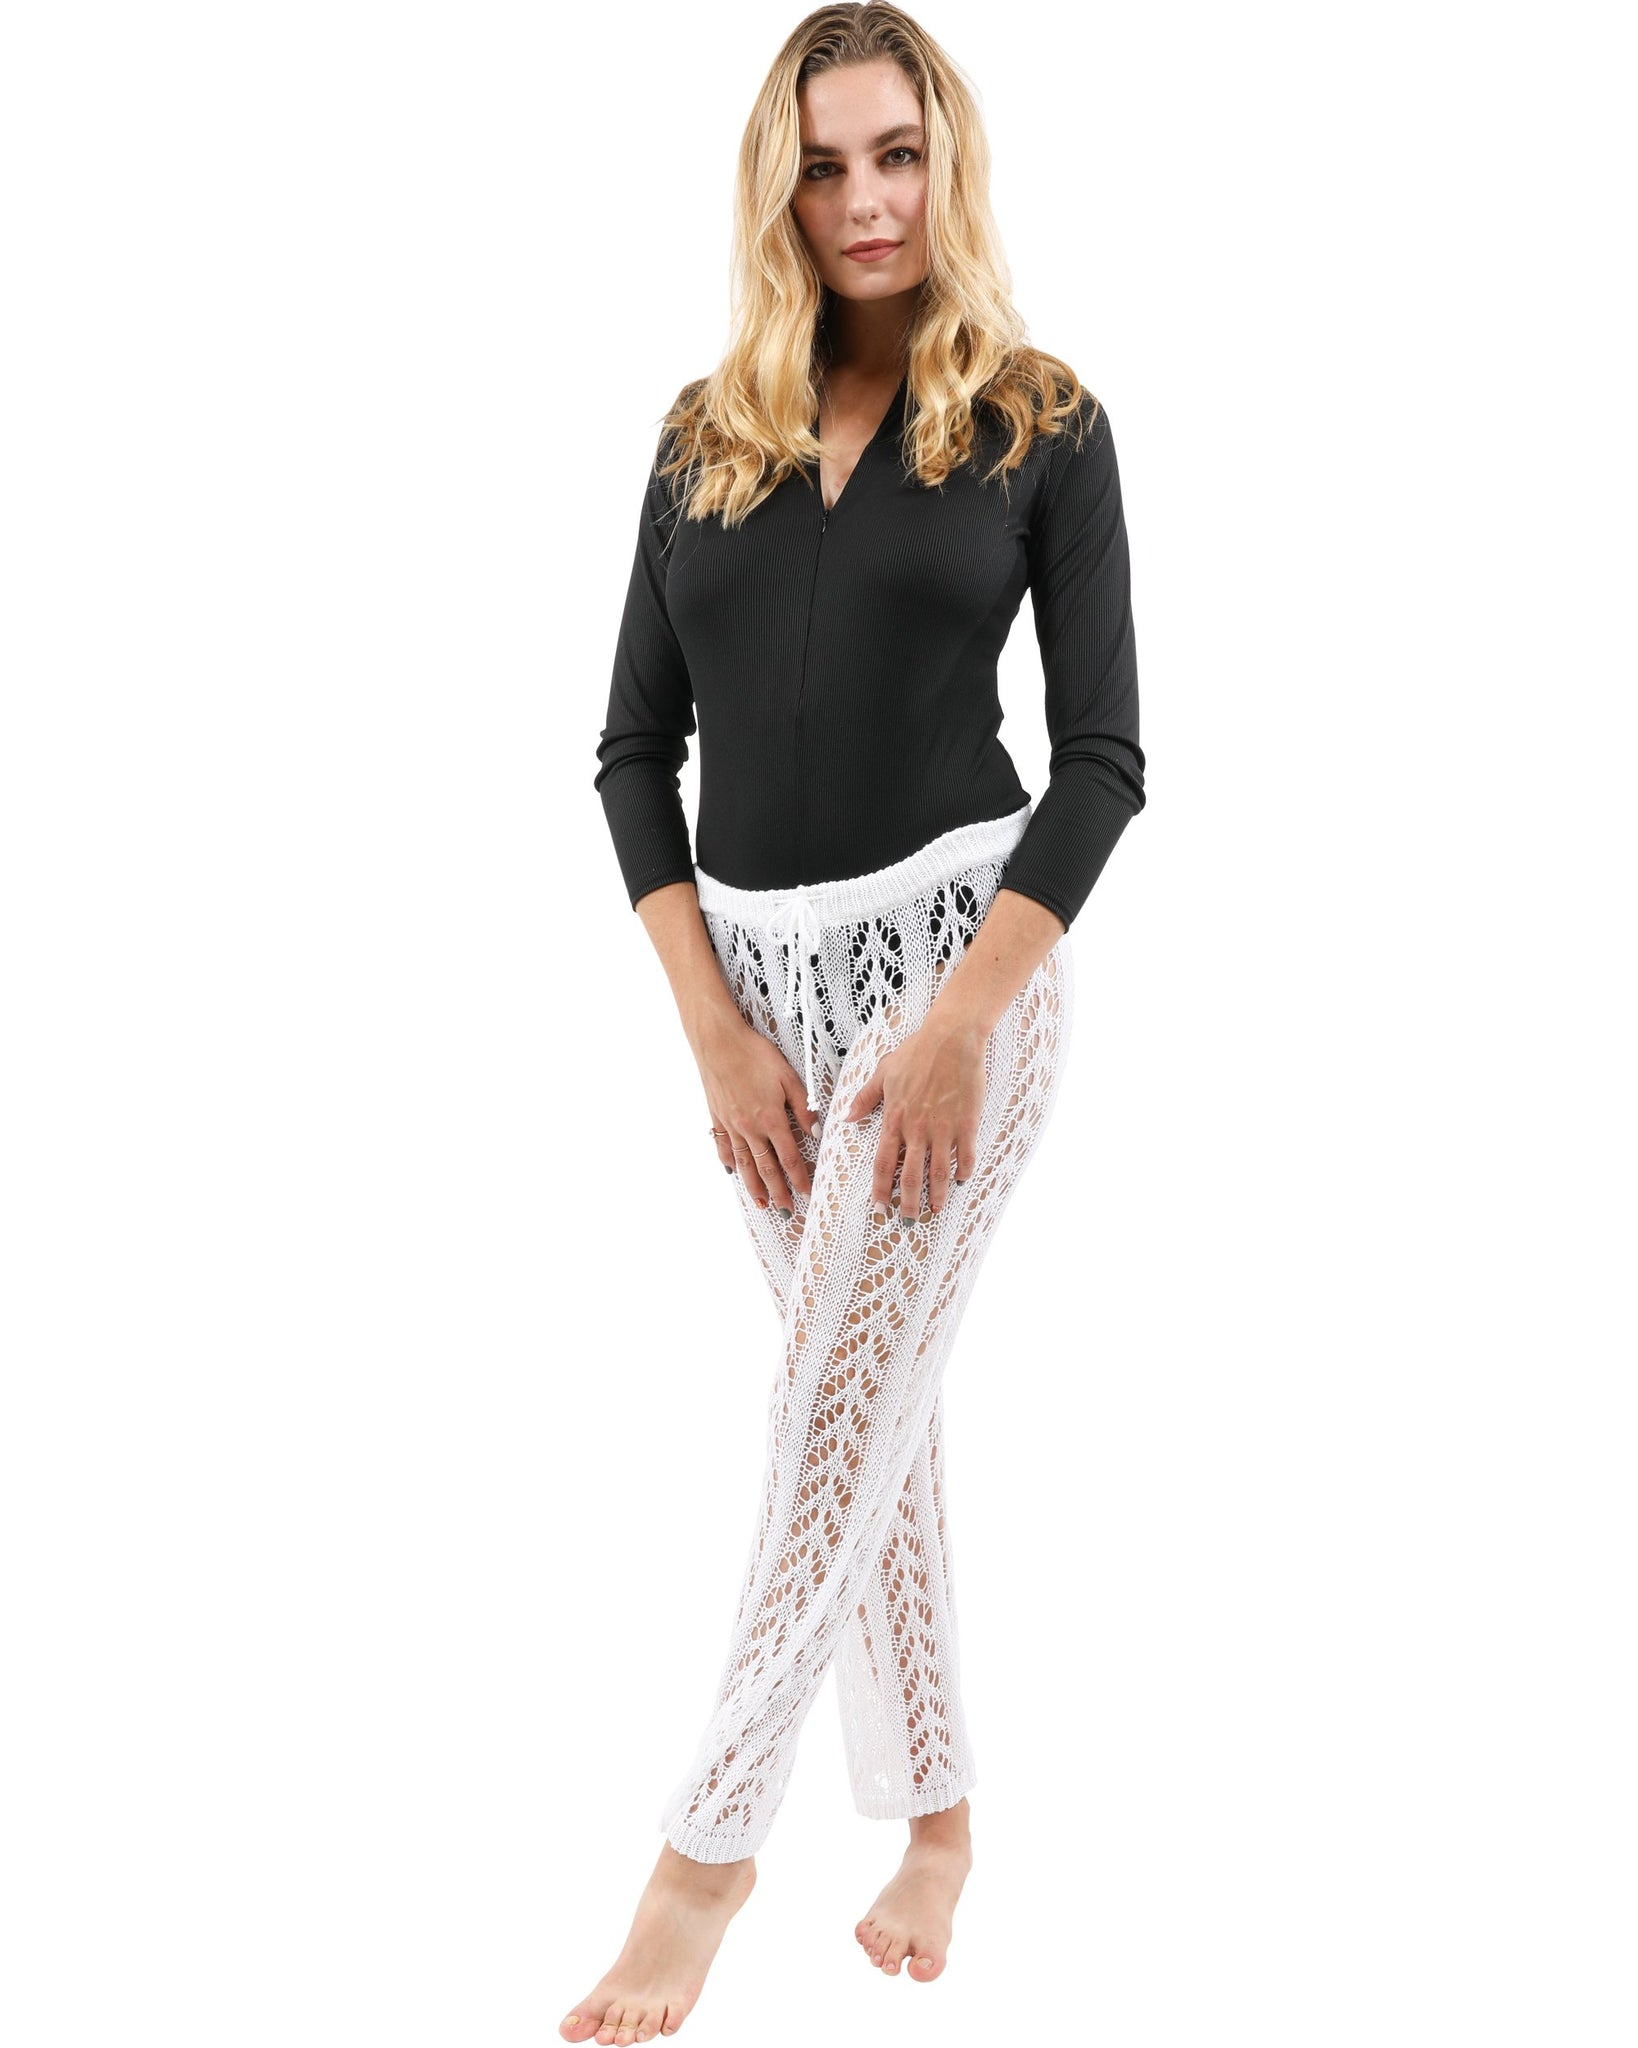 RSP Fashion - Kimridge Crochet Pant - White